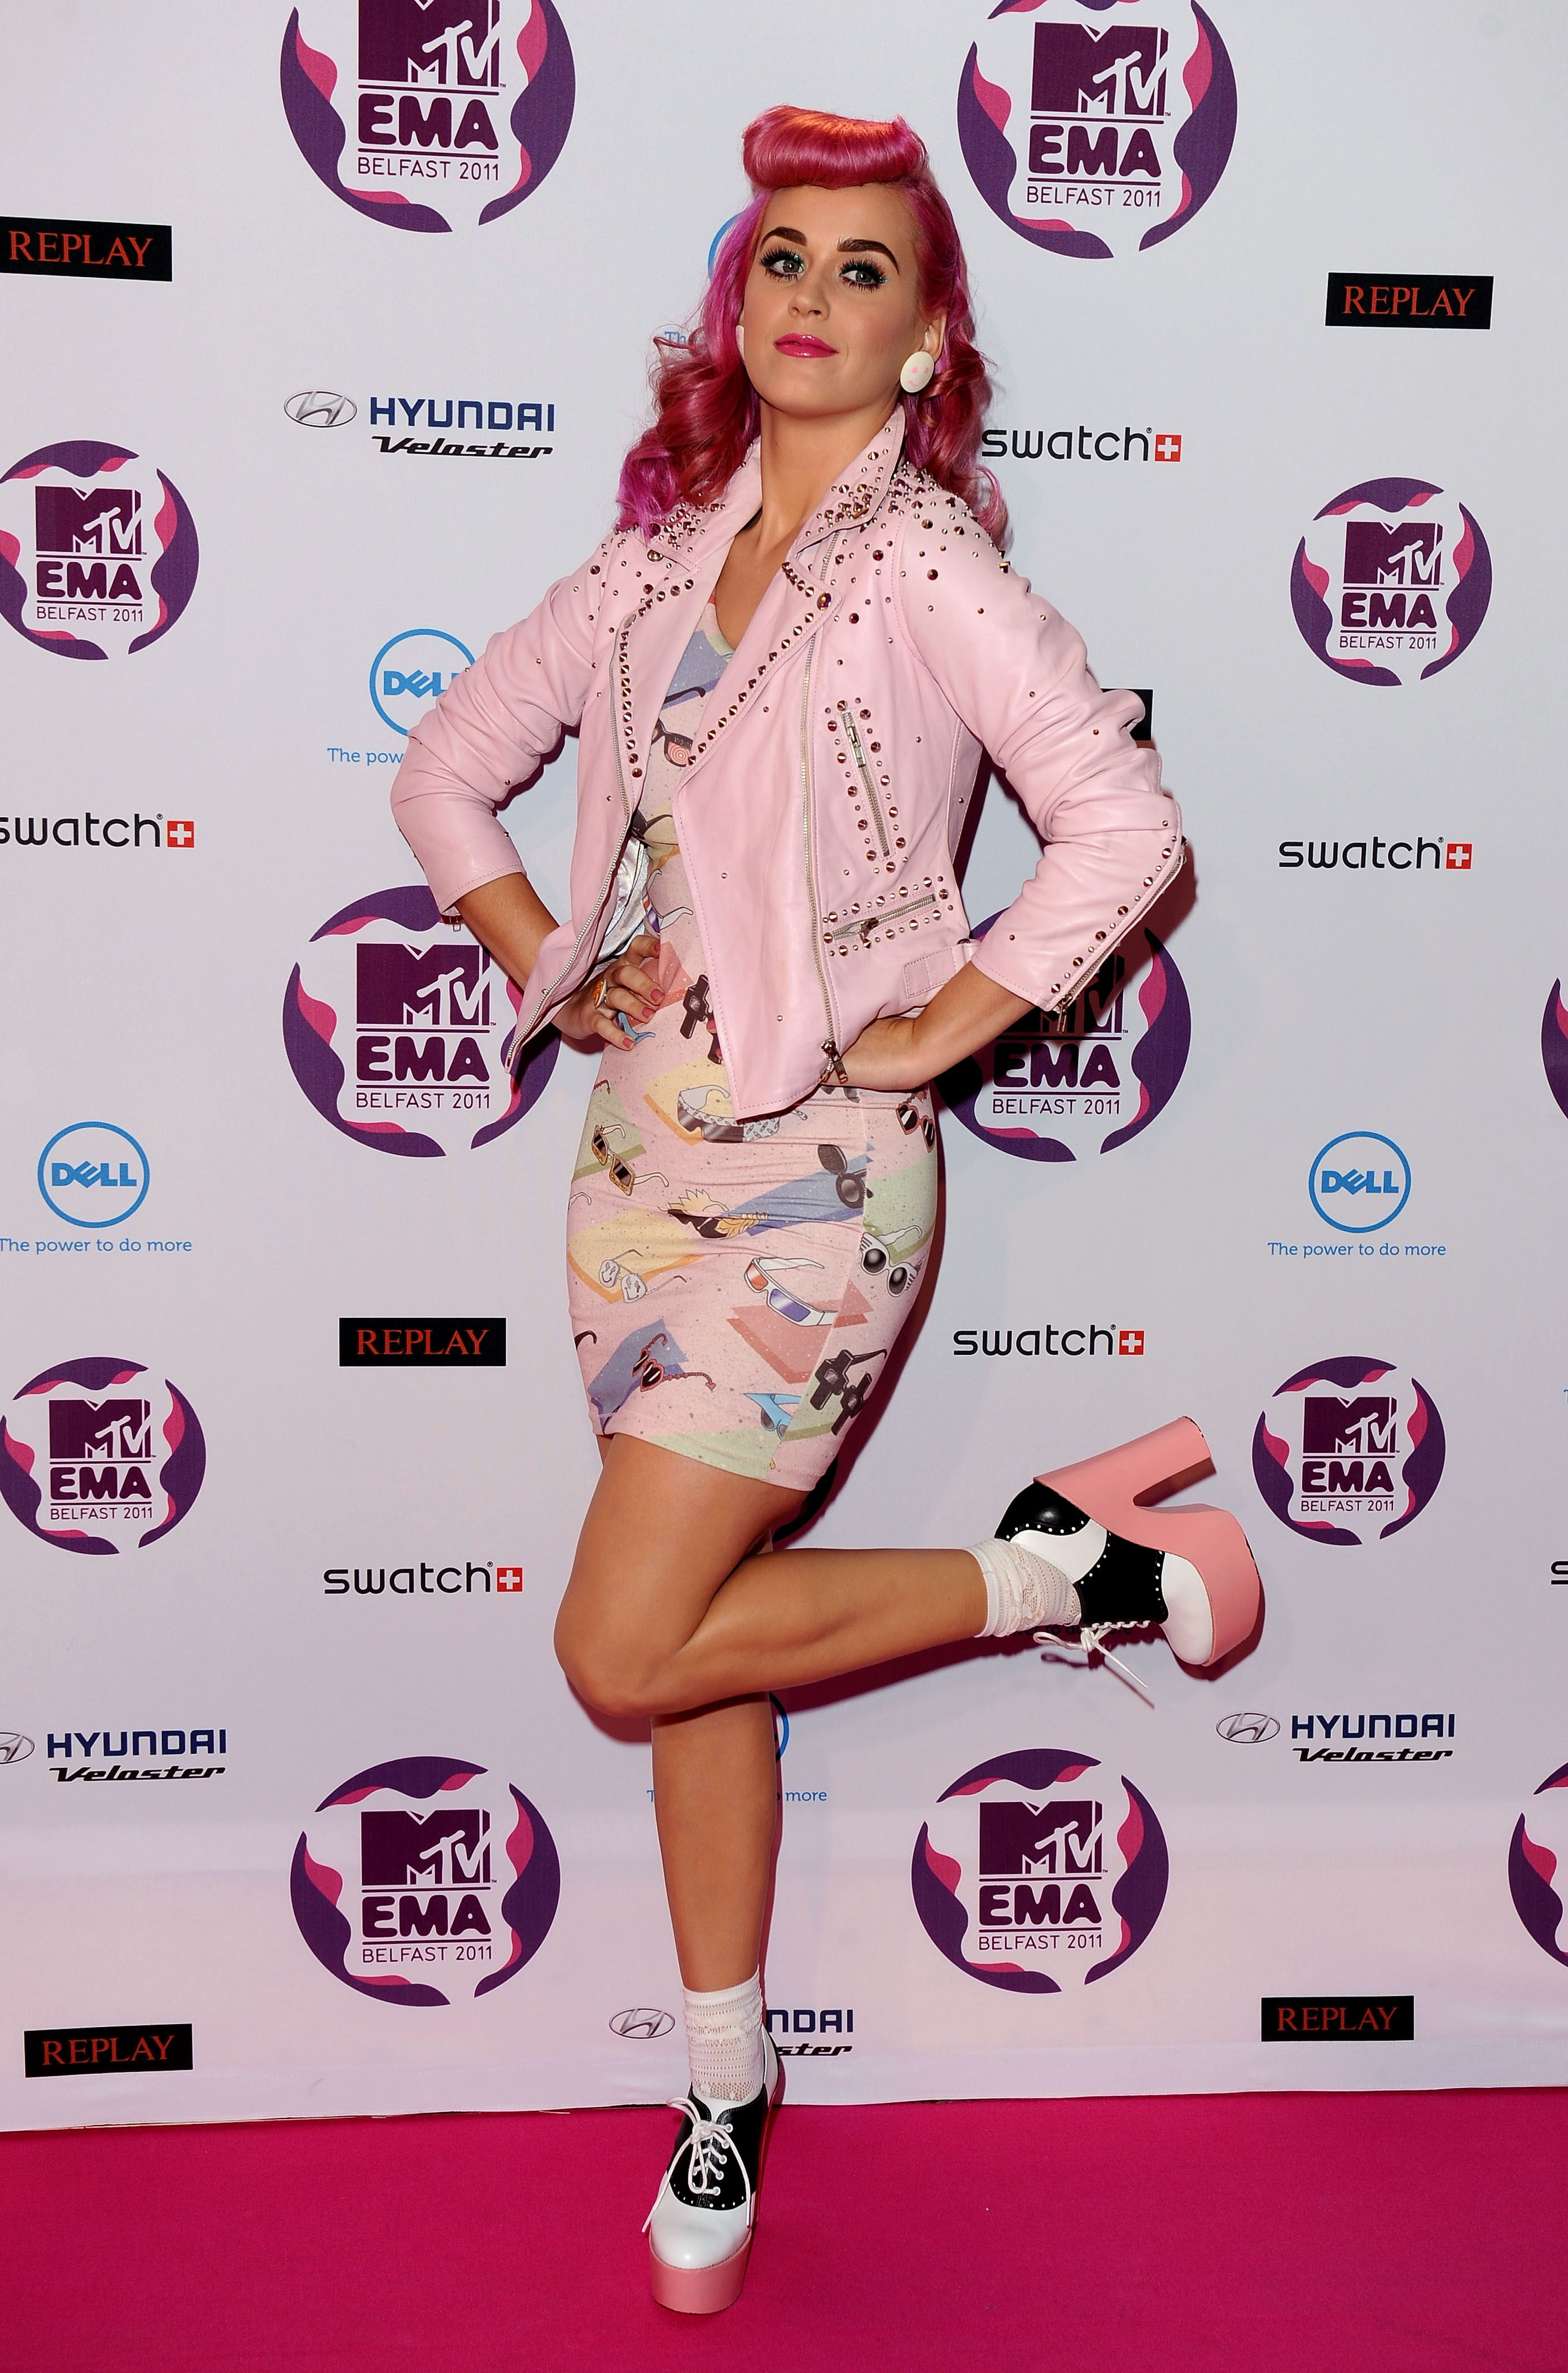 Katy Perry got playful while posing.